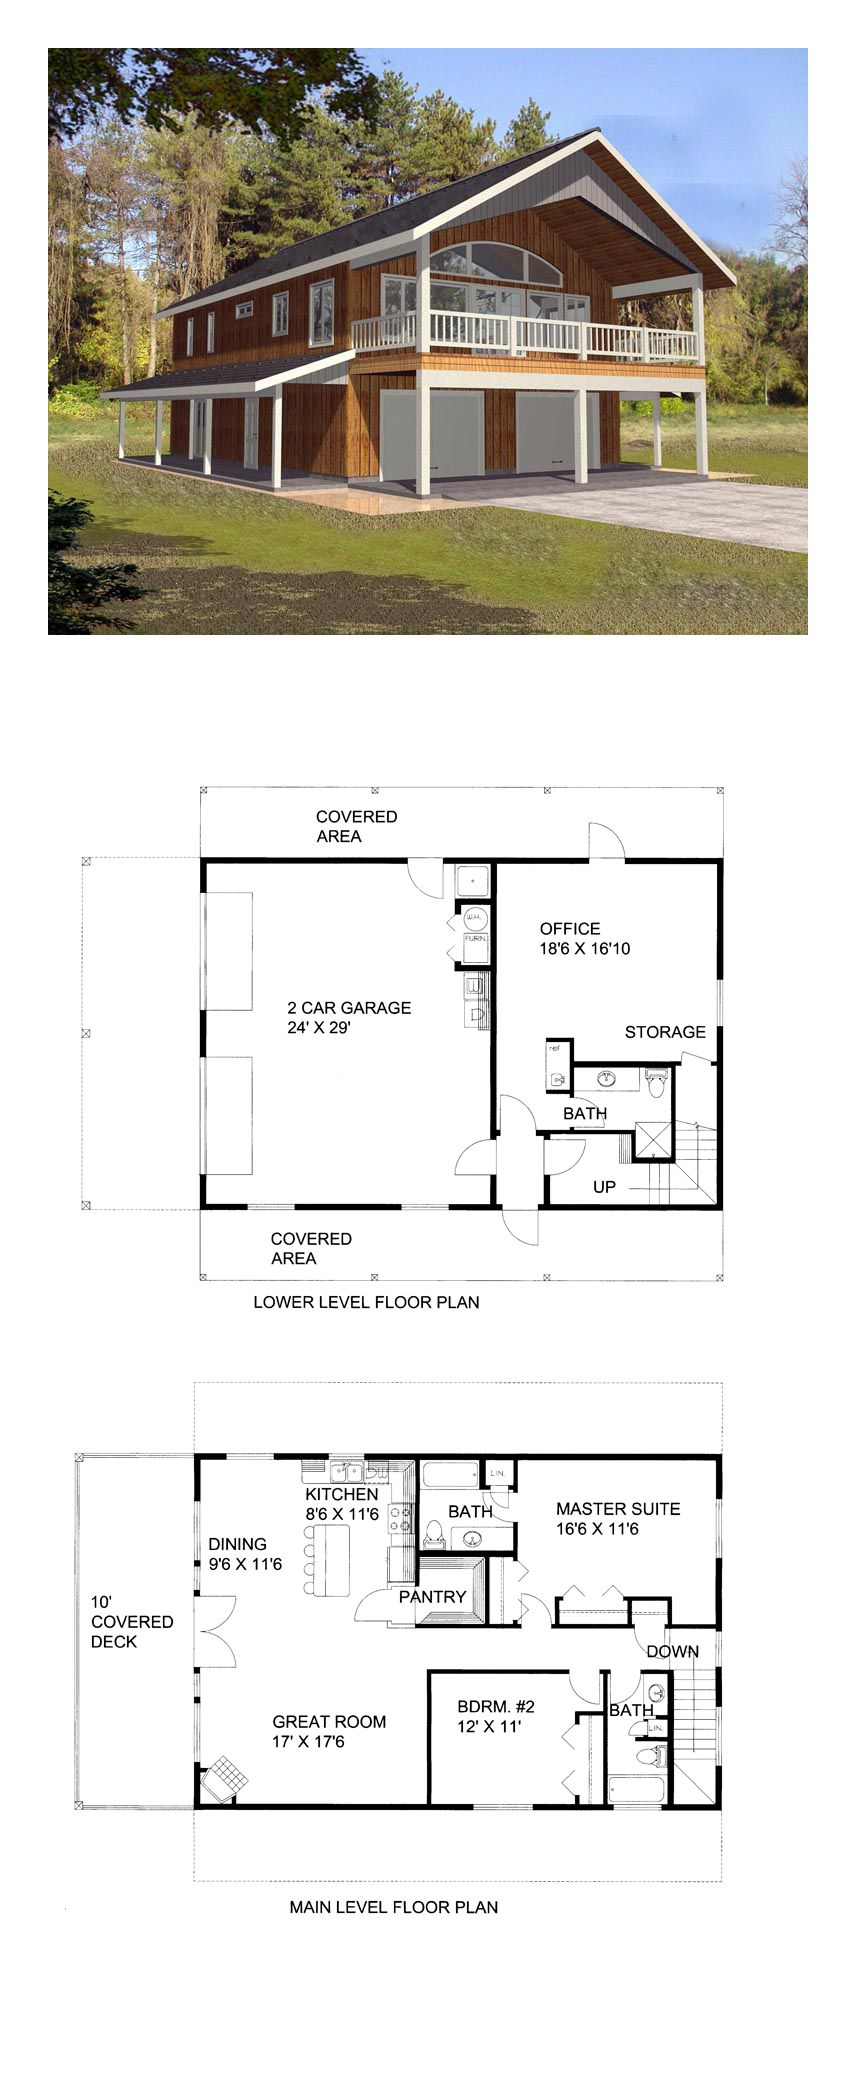 Garage apartment plan 85372 total living area 1901 sq for Garage apartment building plans